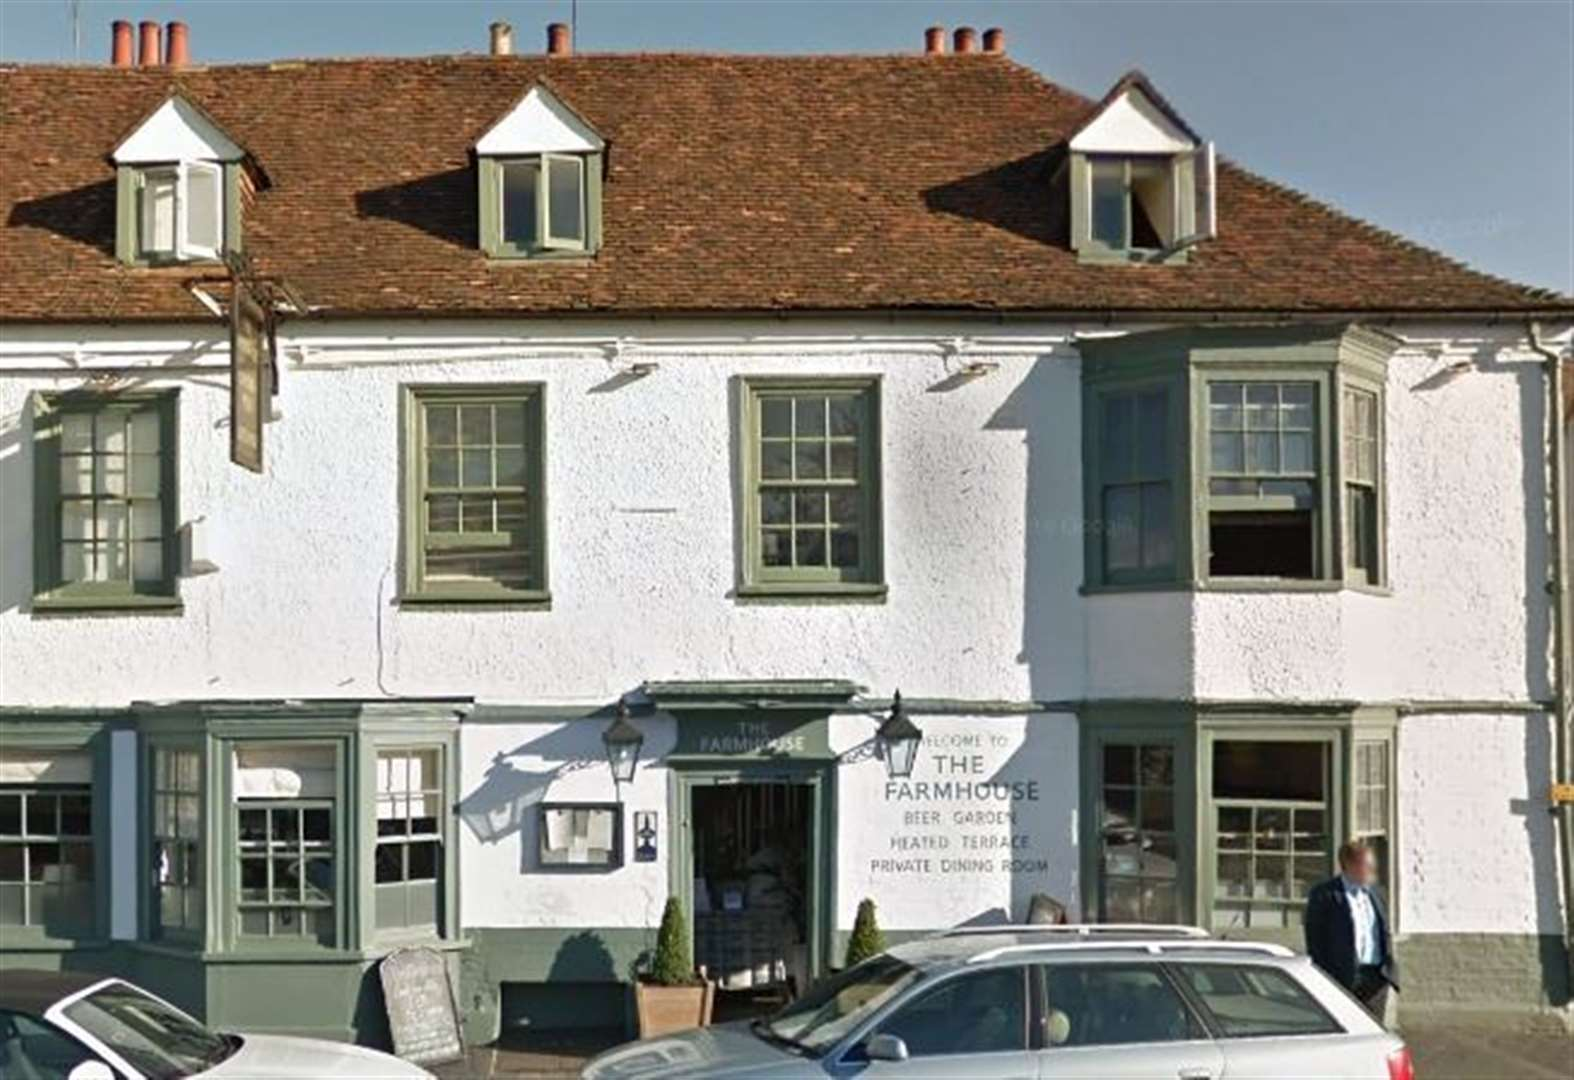 16 Kent pubs named among UK's best